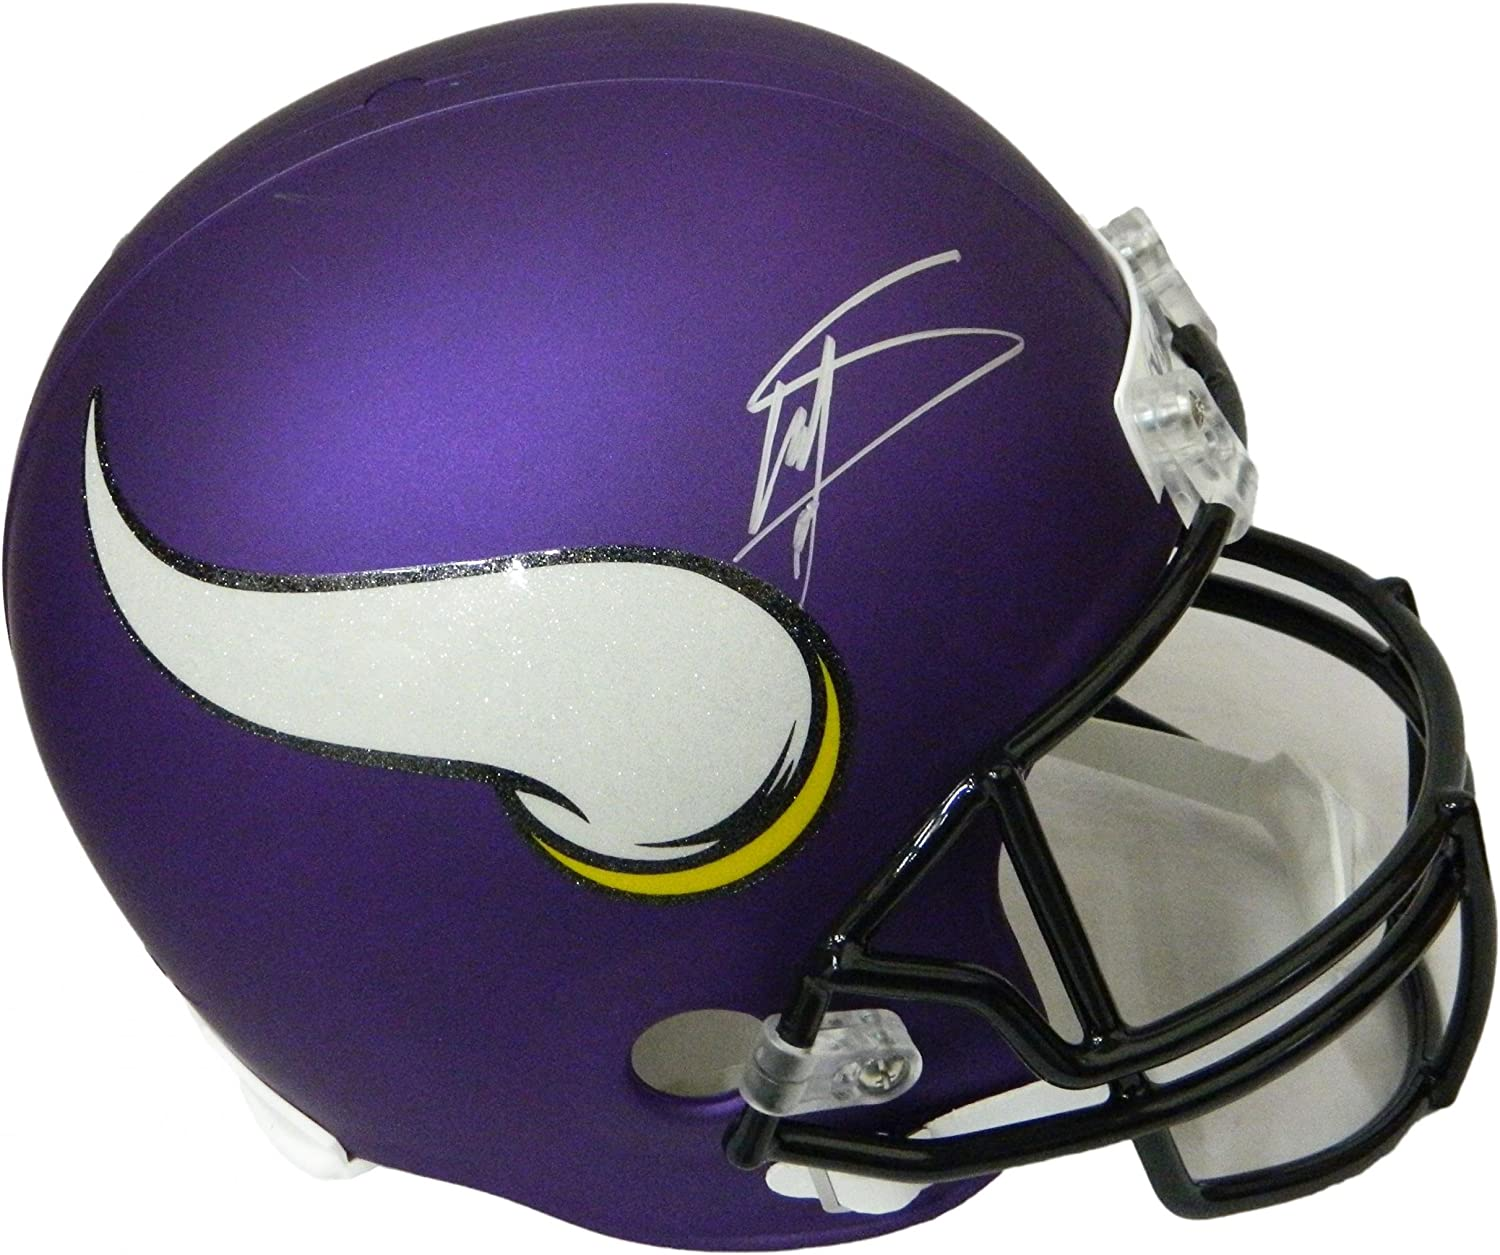 Autographed Stefon Diggs Helmet  Riddell Full Size Replica  Autographed NFL Helmets